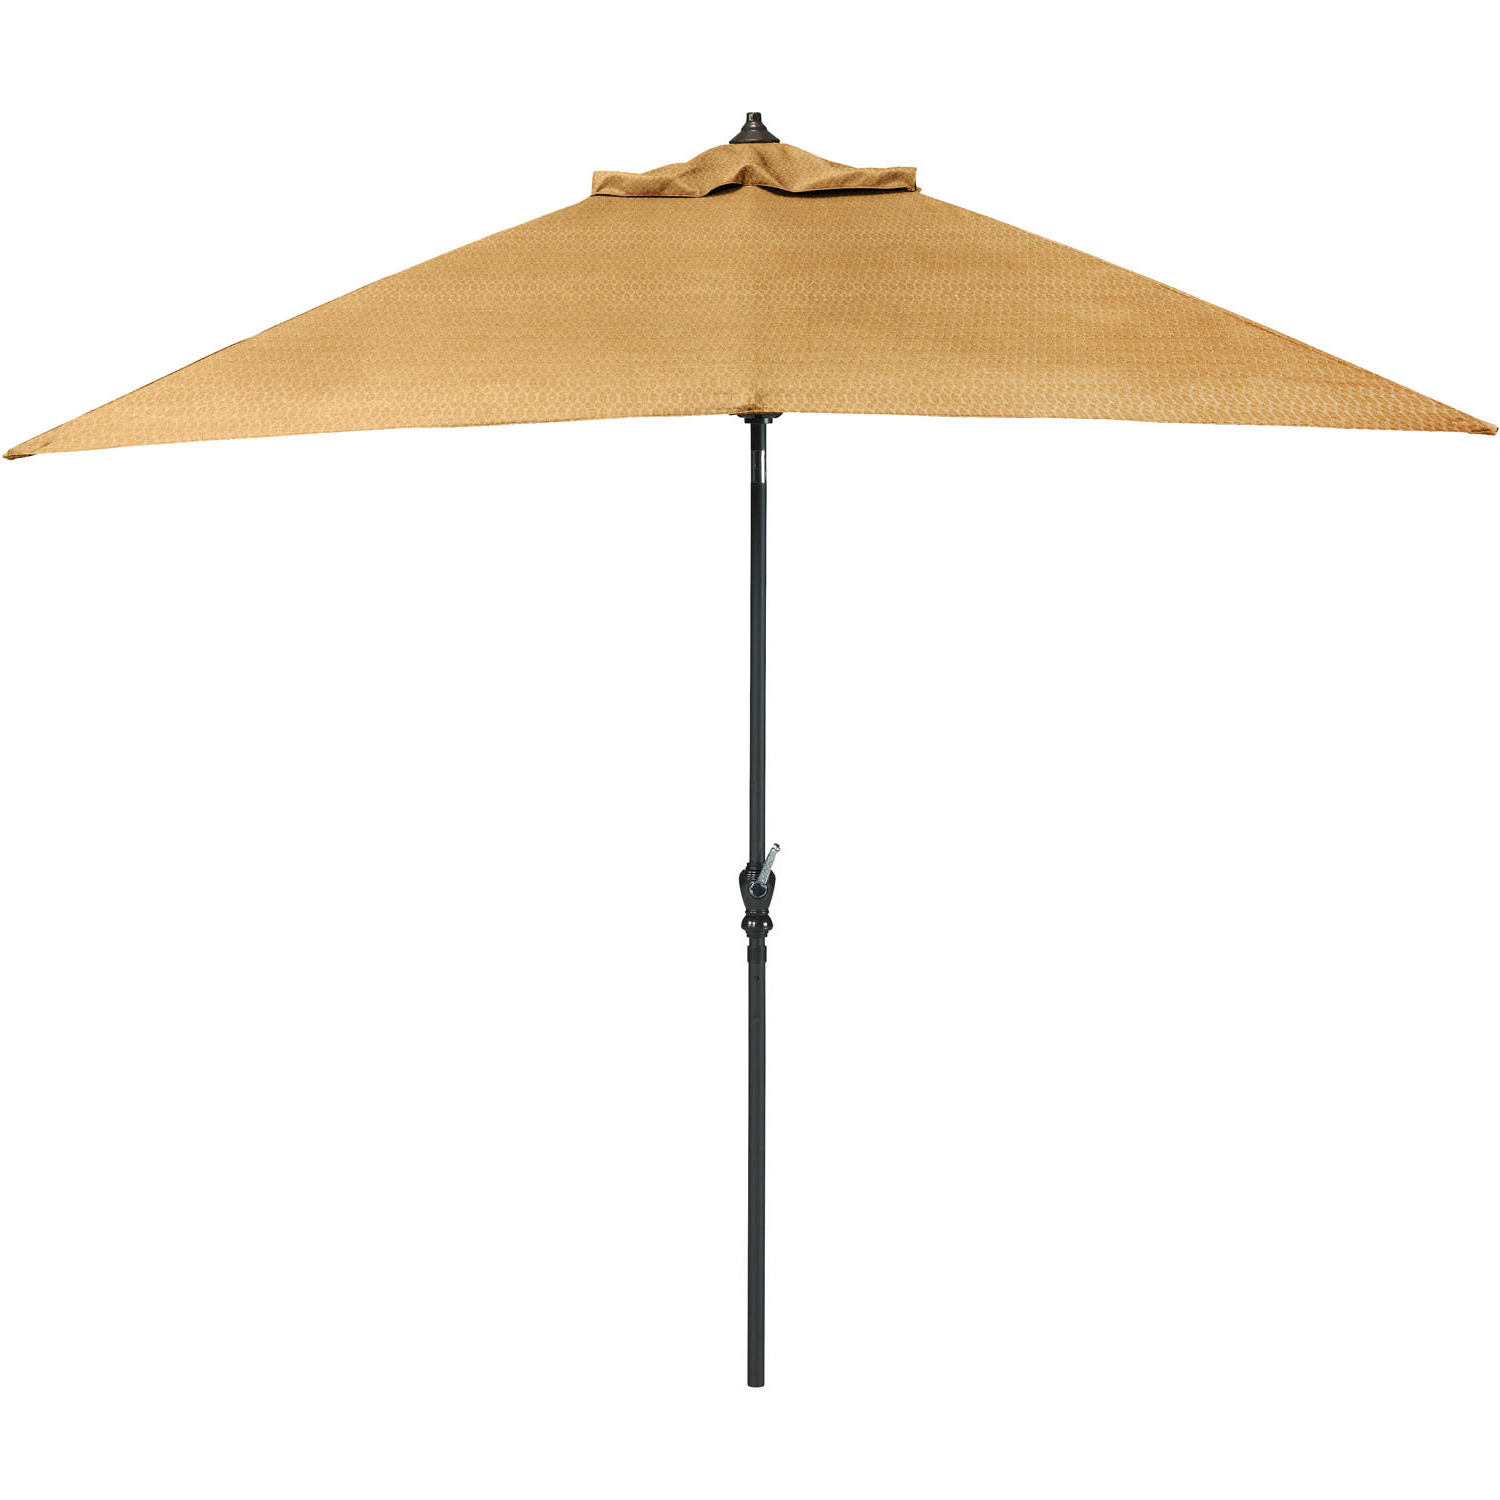 Sweeten 9' Market Umbrella With Current Sheehan Market Umbrellas (View 17 of 20)